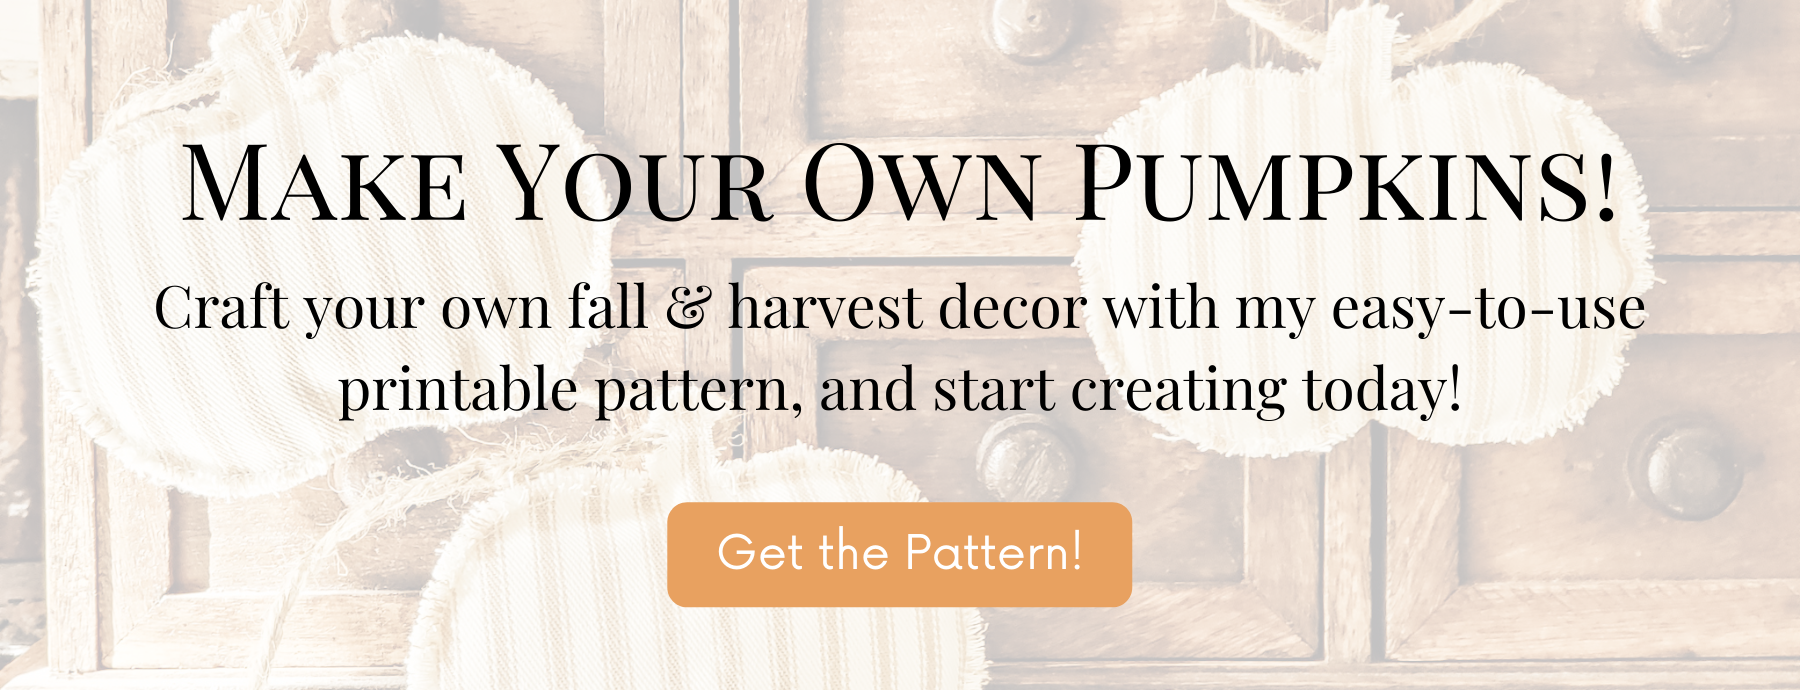 Click to download the printable pumpkin pattern